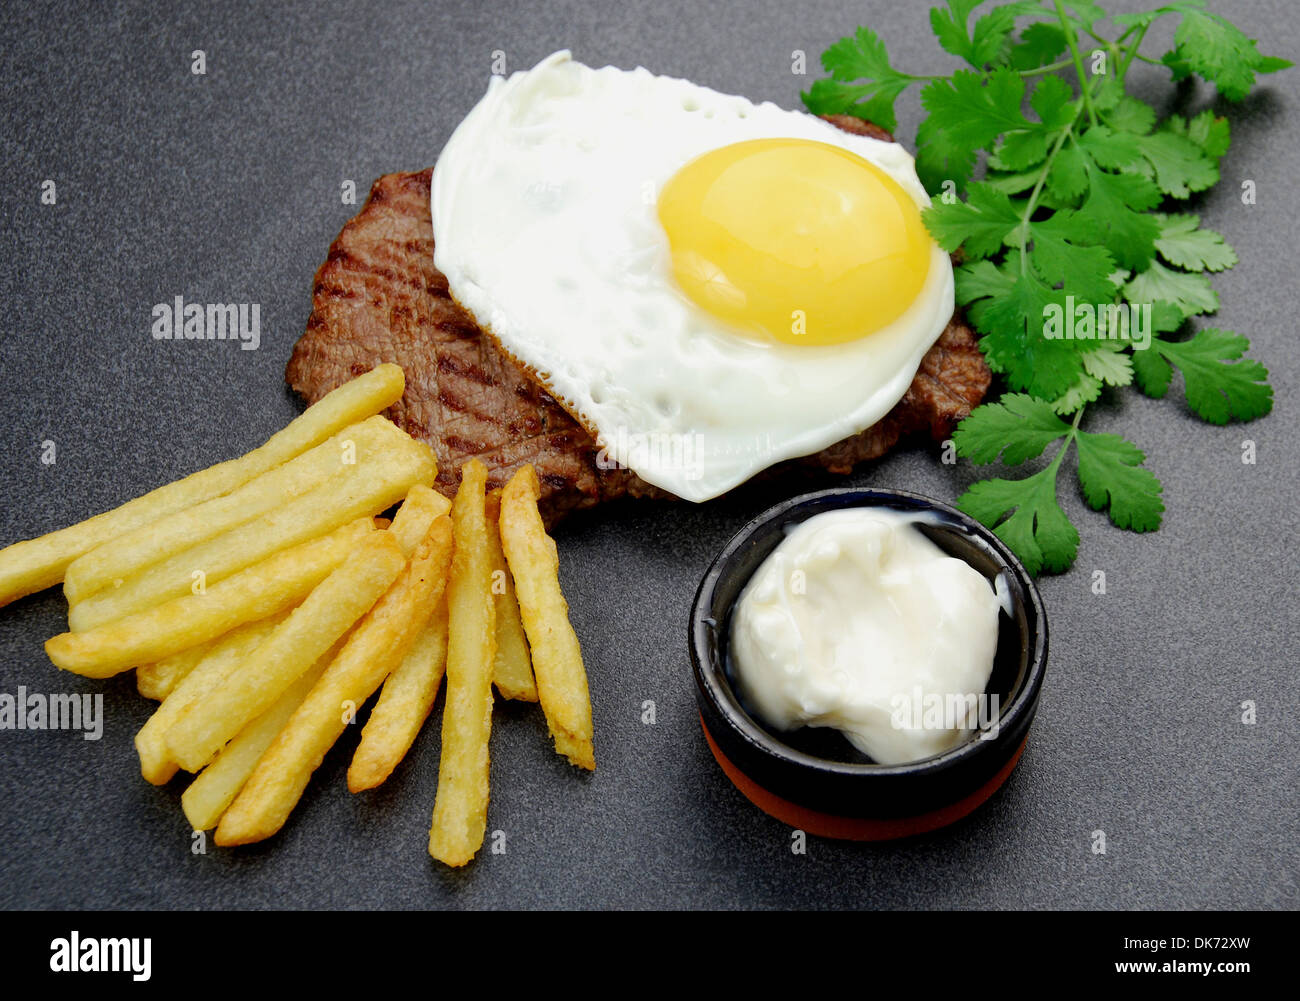 Lucky Steak. Sandwich rump steak topped with a range free fried egg, a side of French fries and mayo. - Stock Image